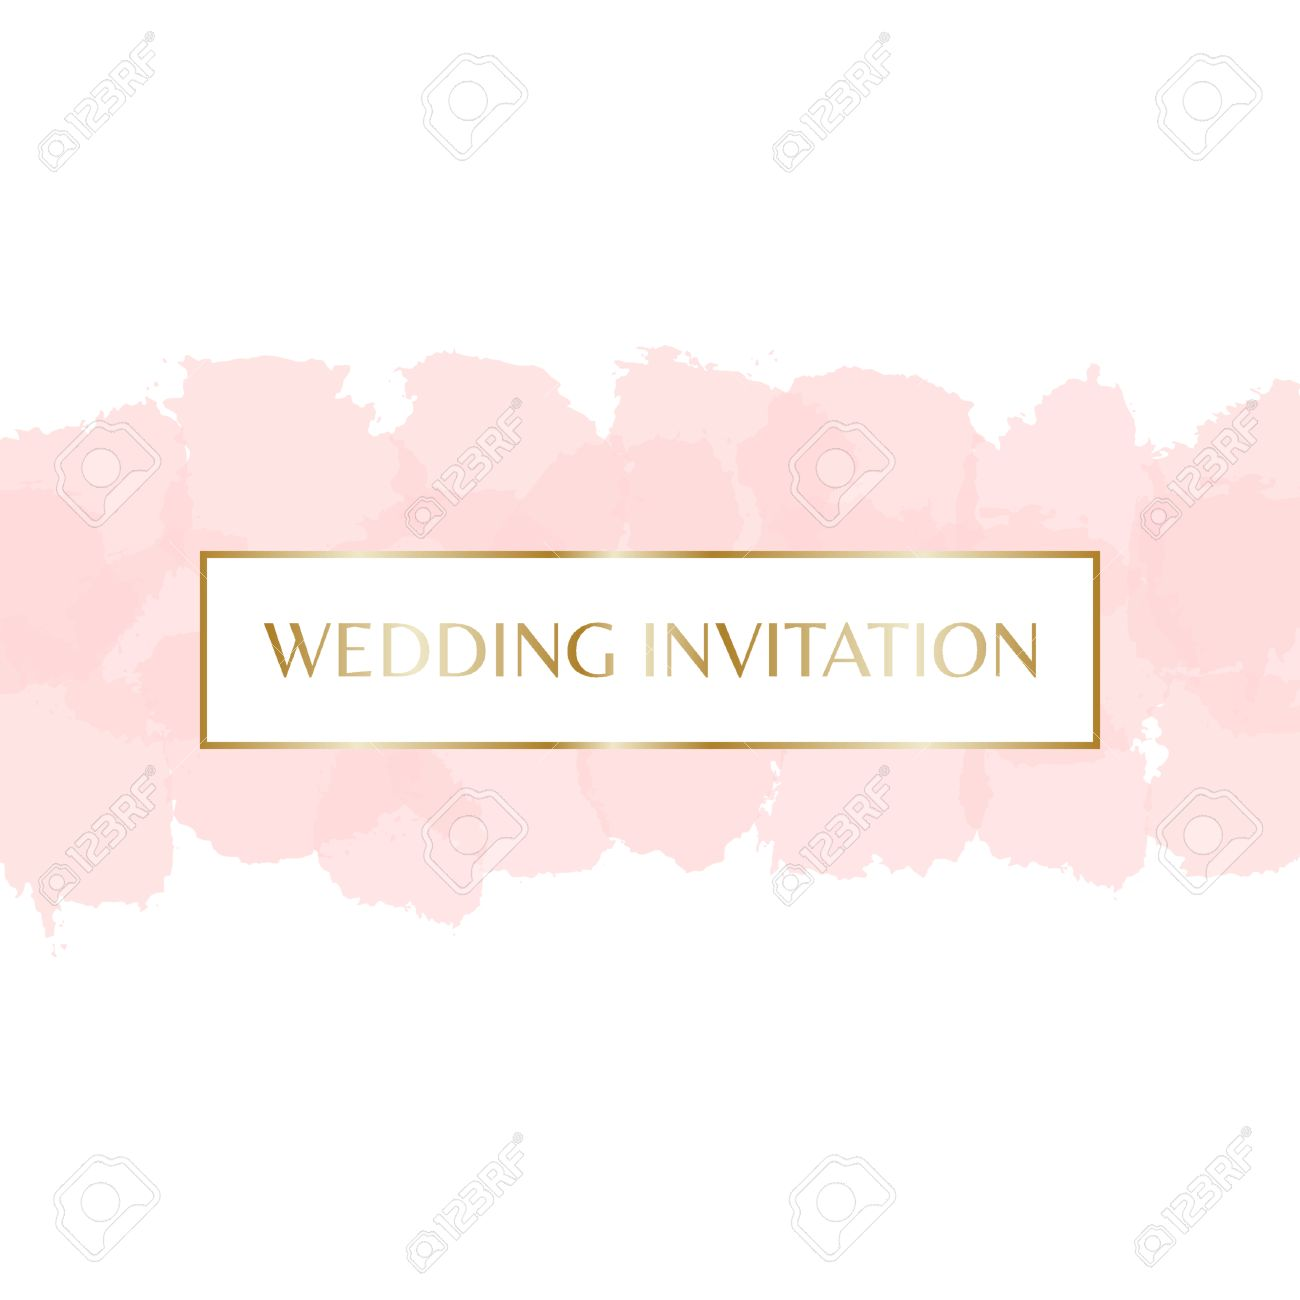 Wedding invitation design with gold letters message and pastel vector wedding invitation design with gold letters message and pastel pink watercolor brush strokes in the background stopboris Image collections